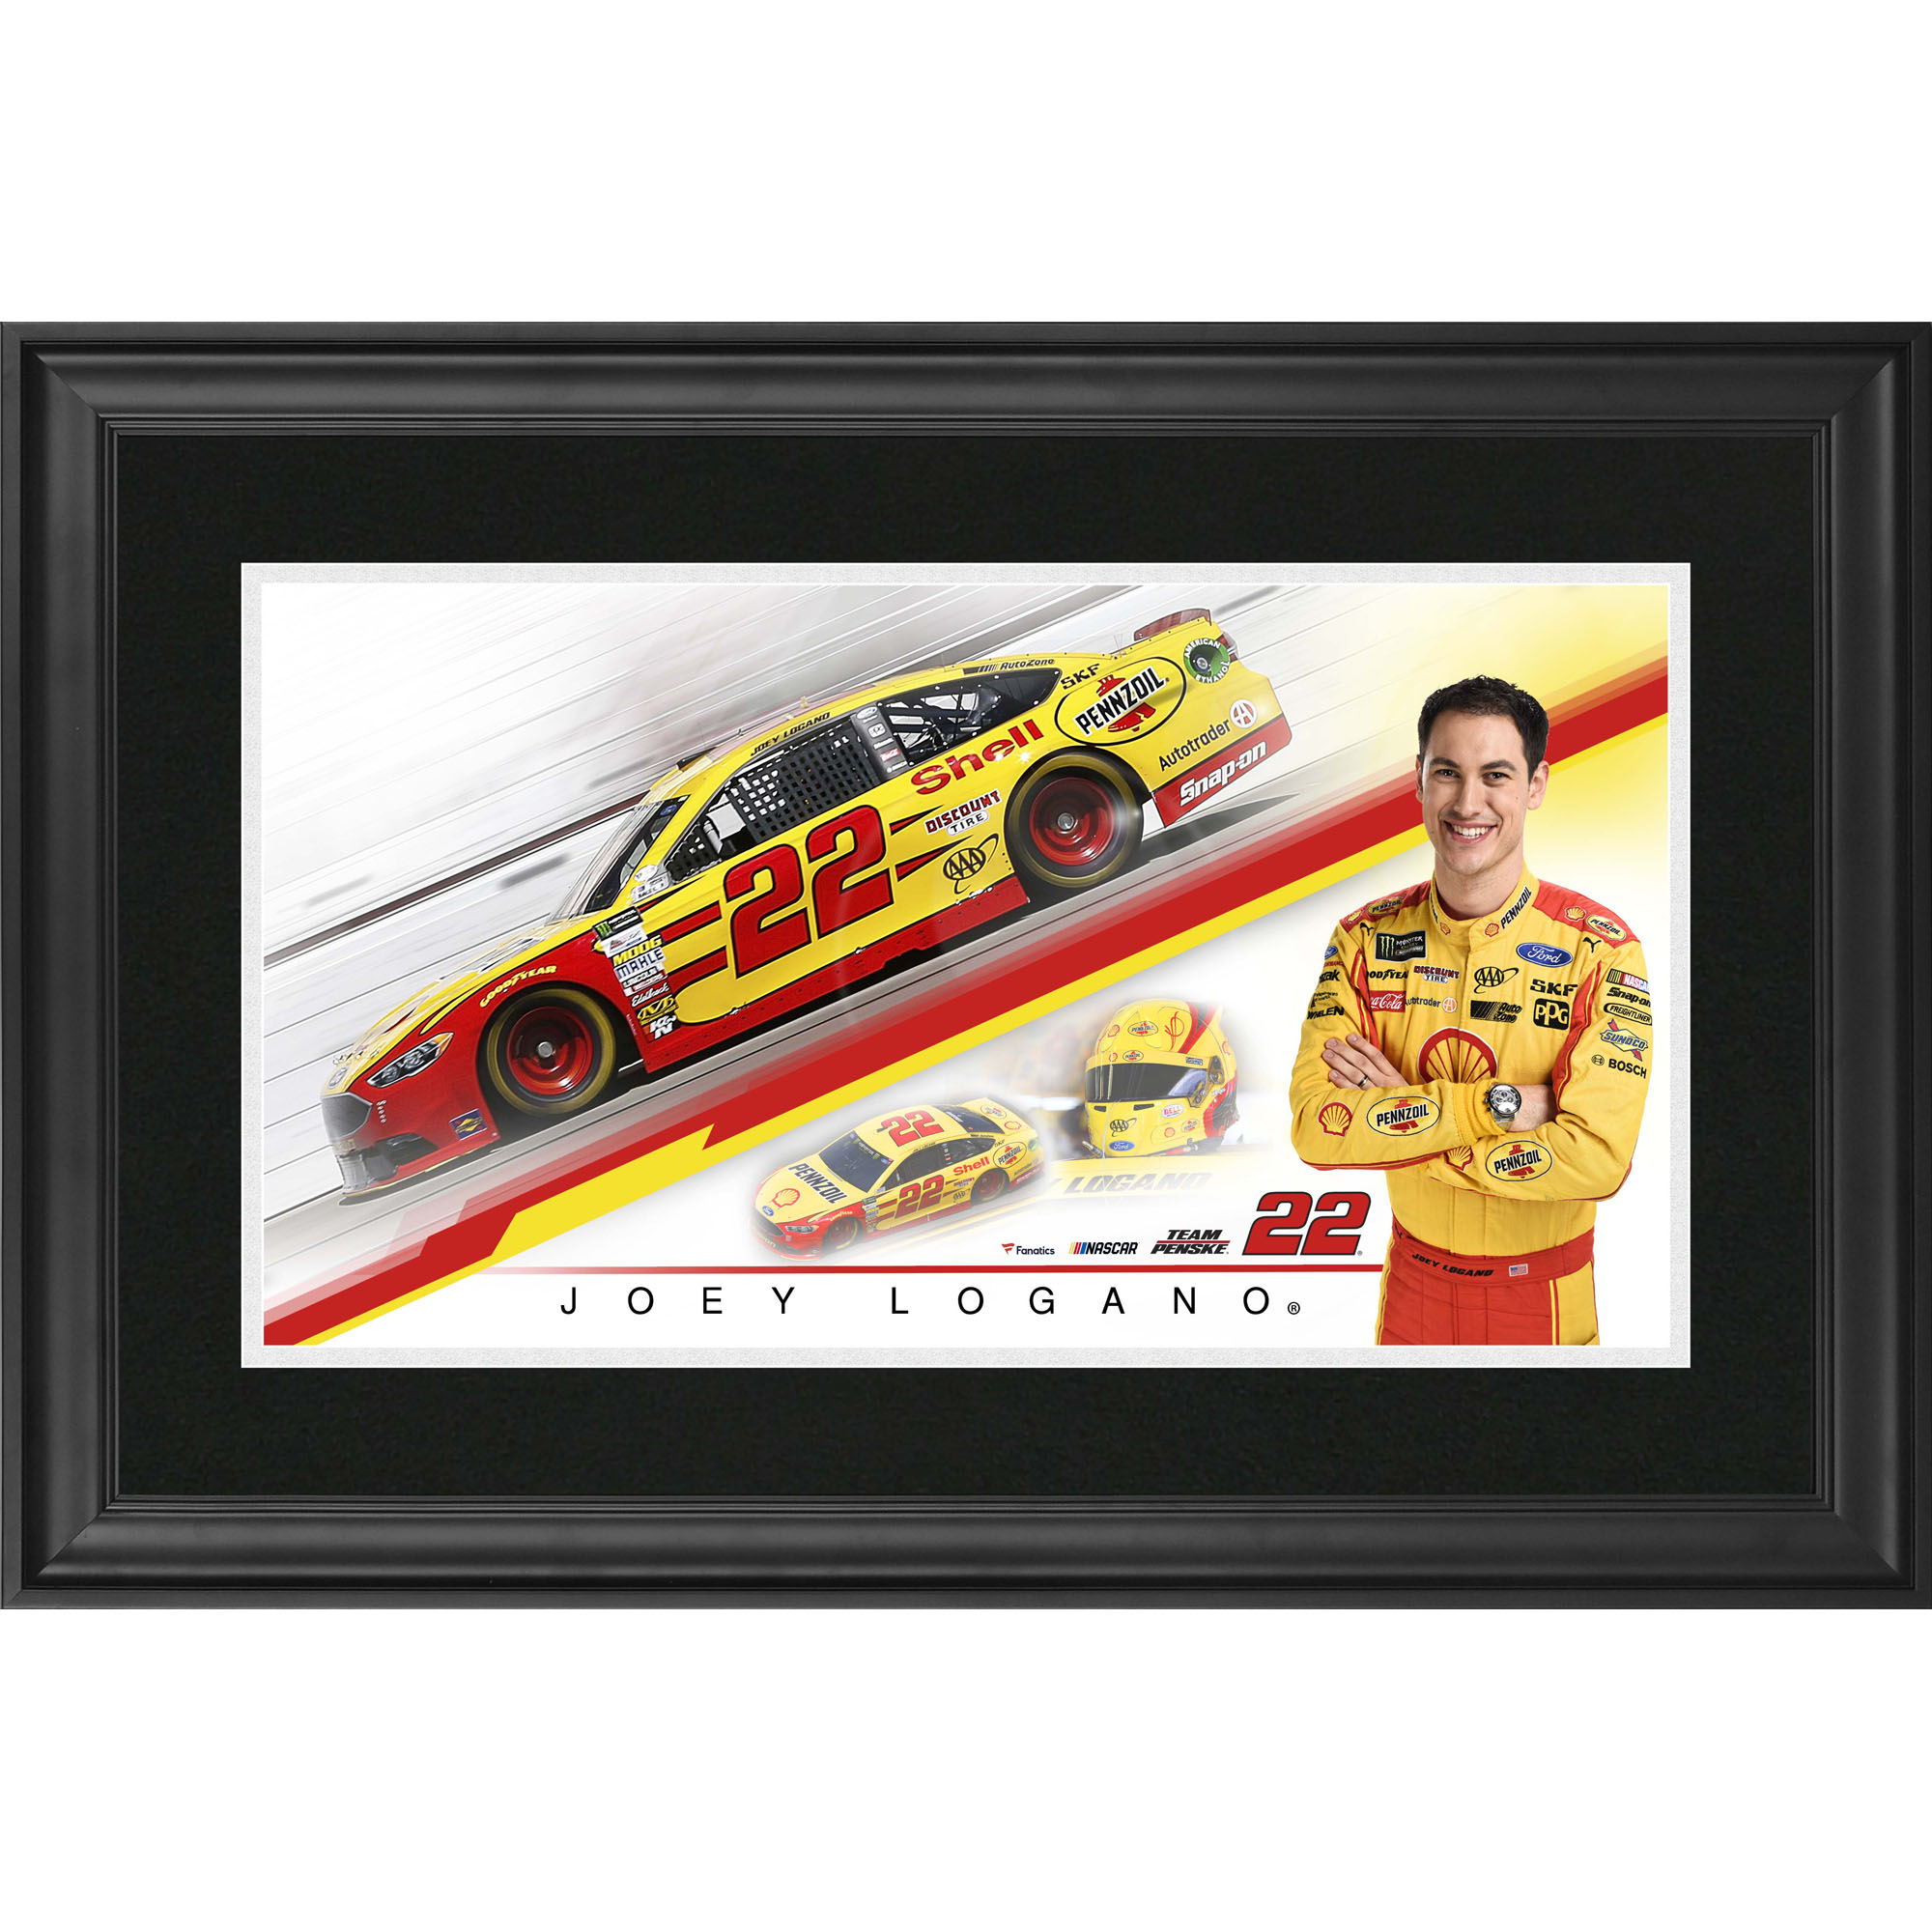 "Joey Logano Fanatics Authentic Framed 10"" x 18"" Panoramic Photograph - No Size"